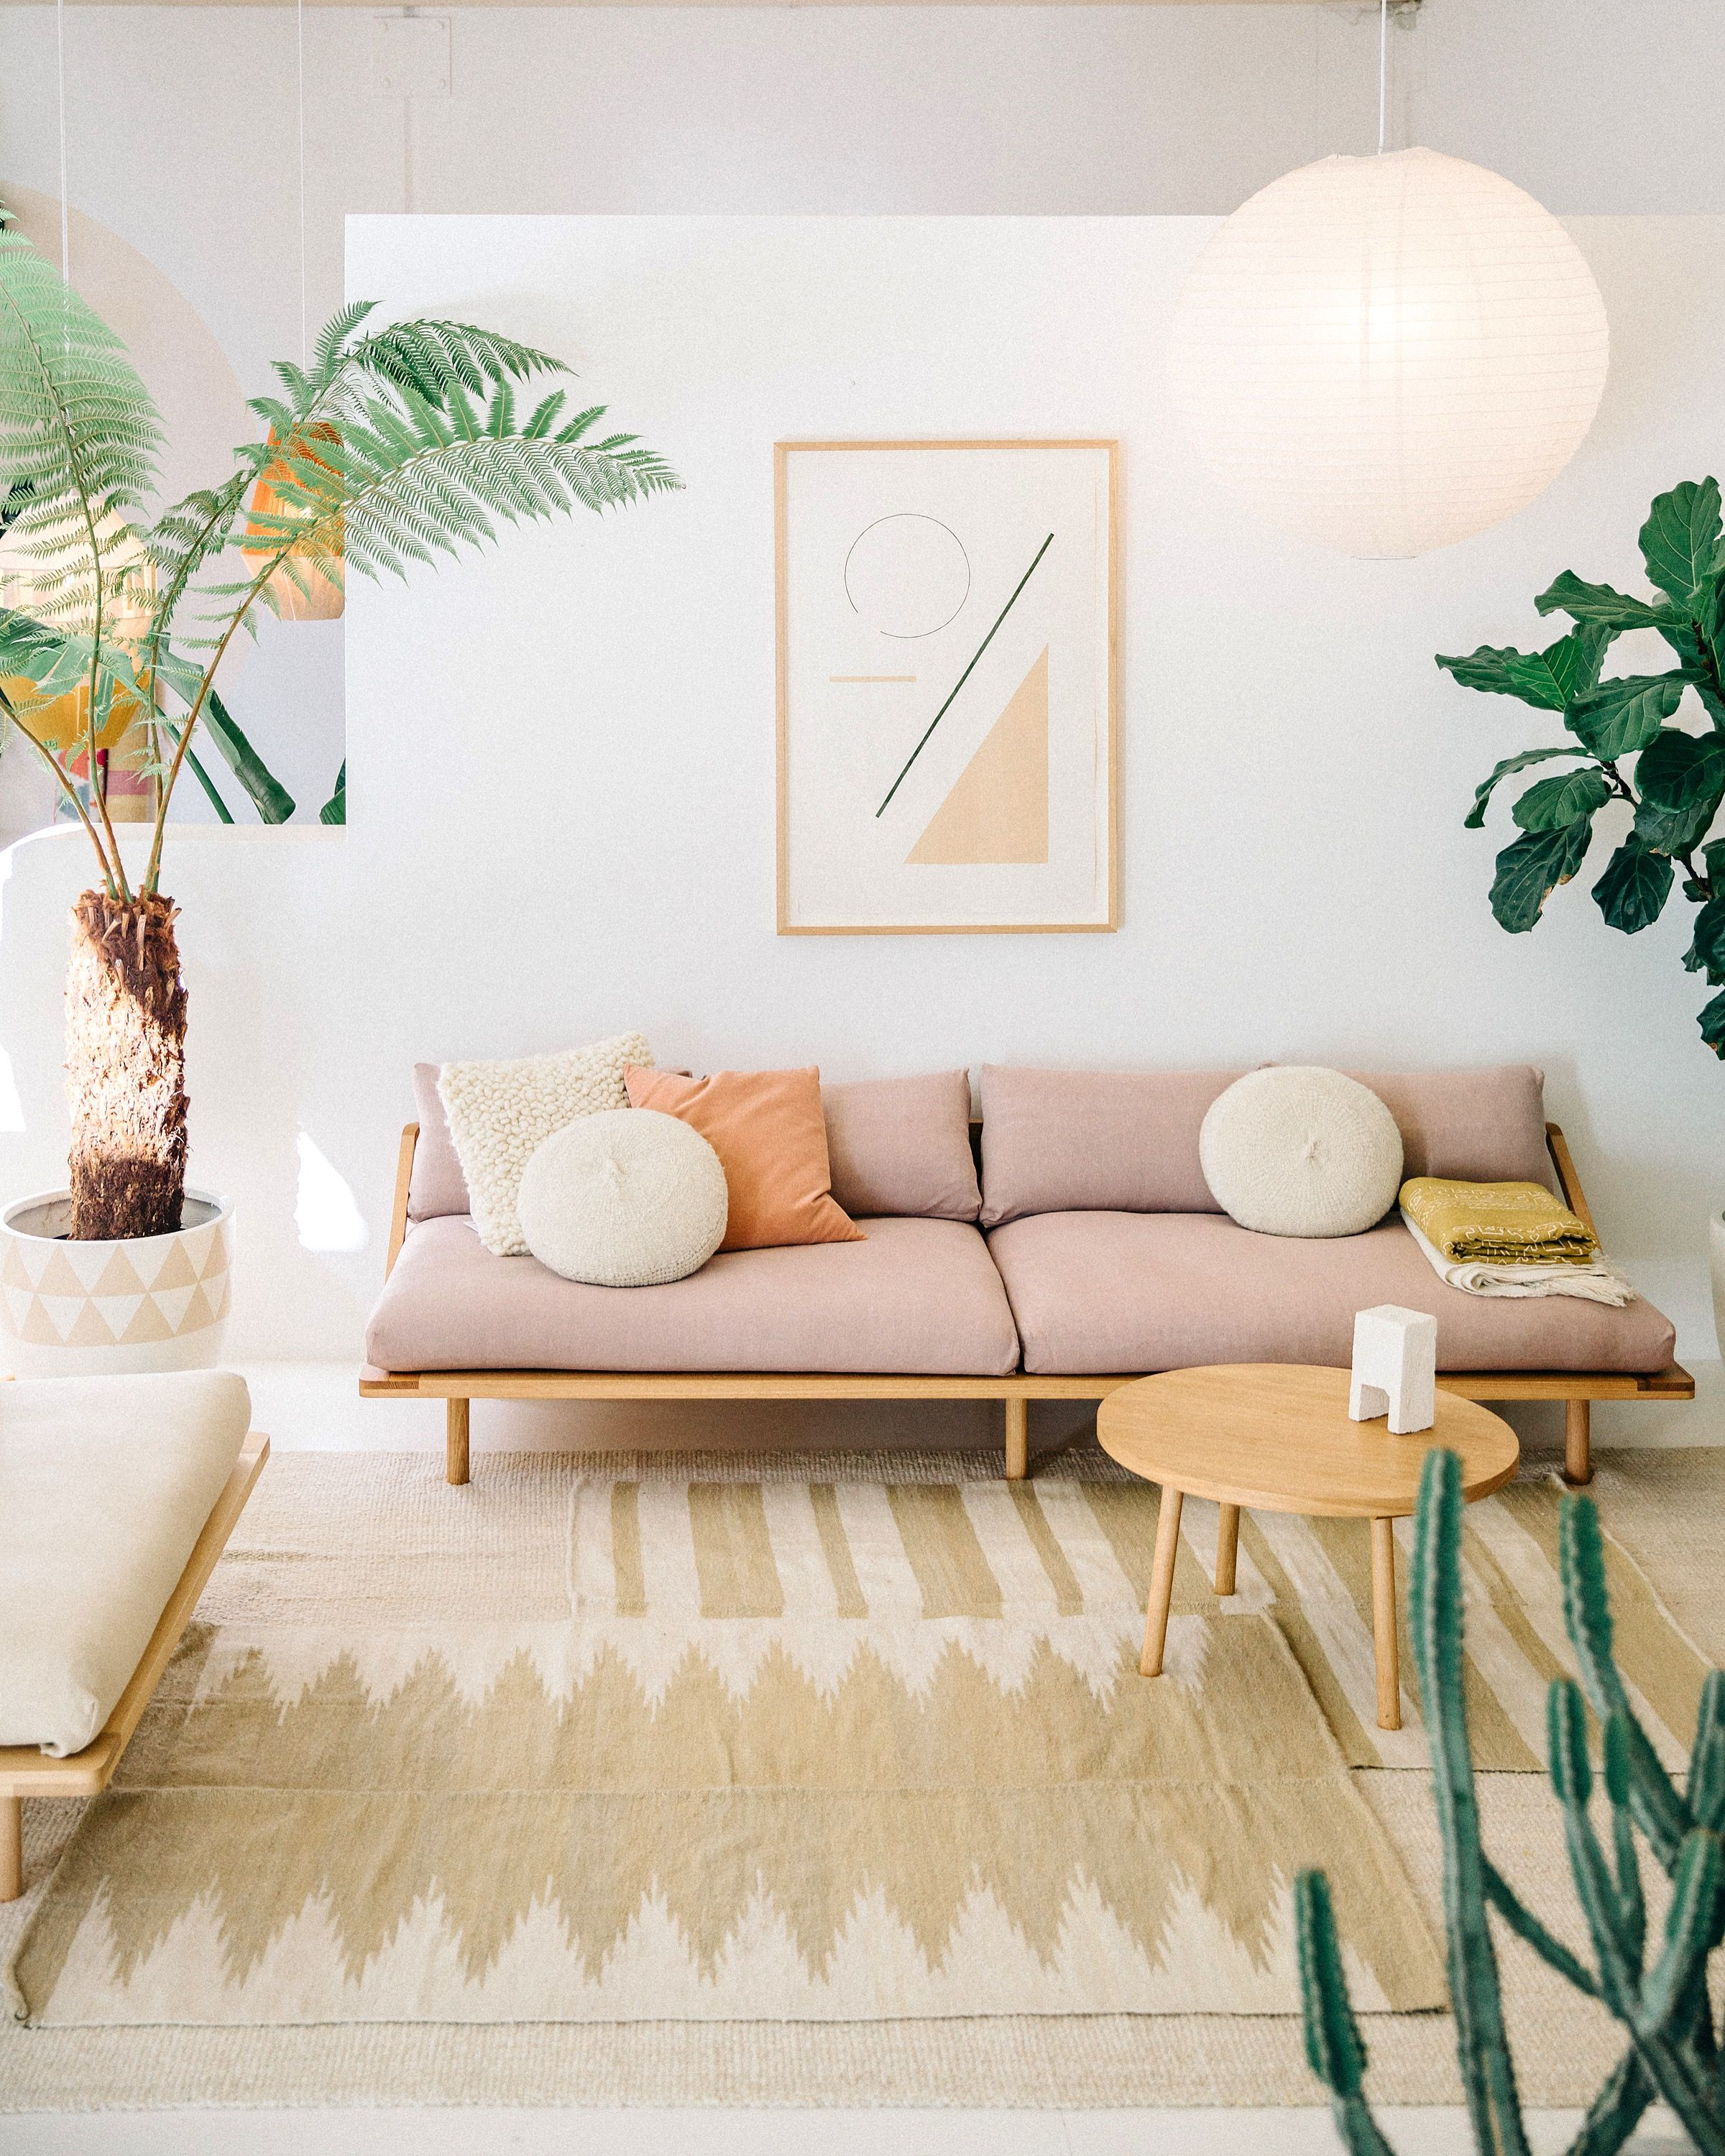 These Vintage Living Room Lighting Ideas Will Change Your Home Decor ...